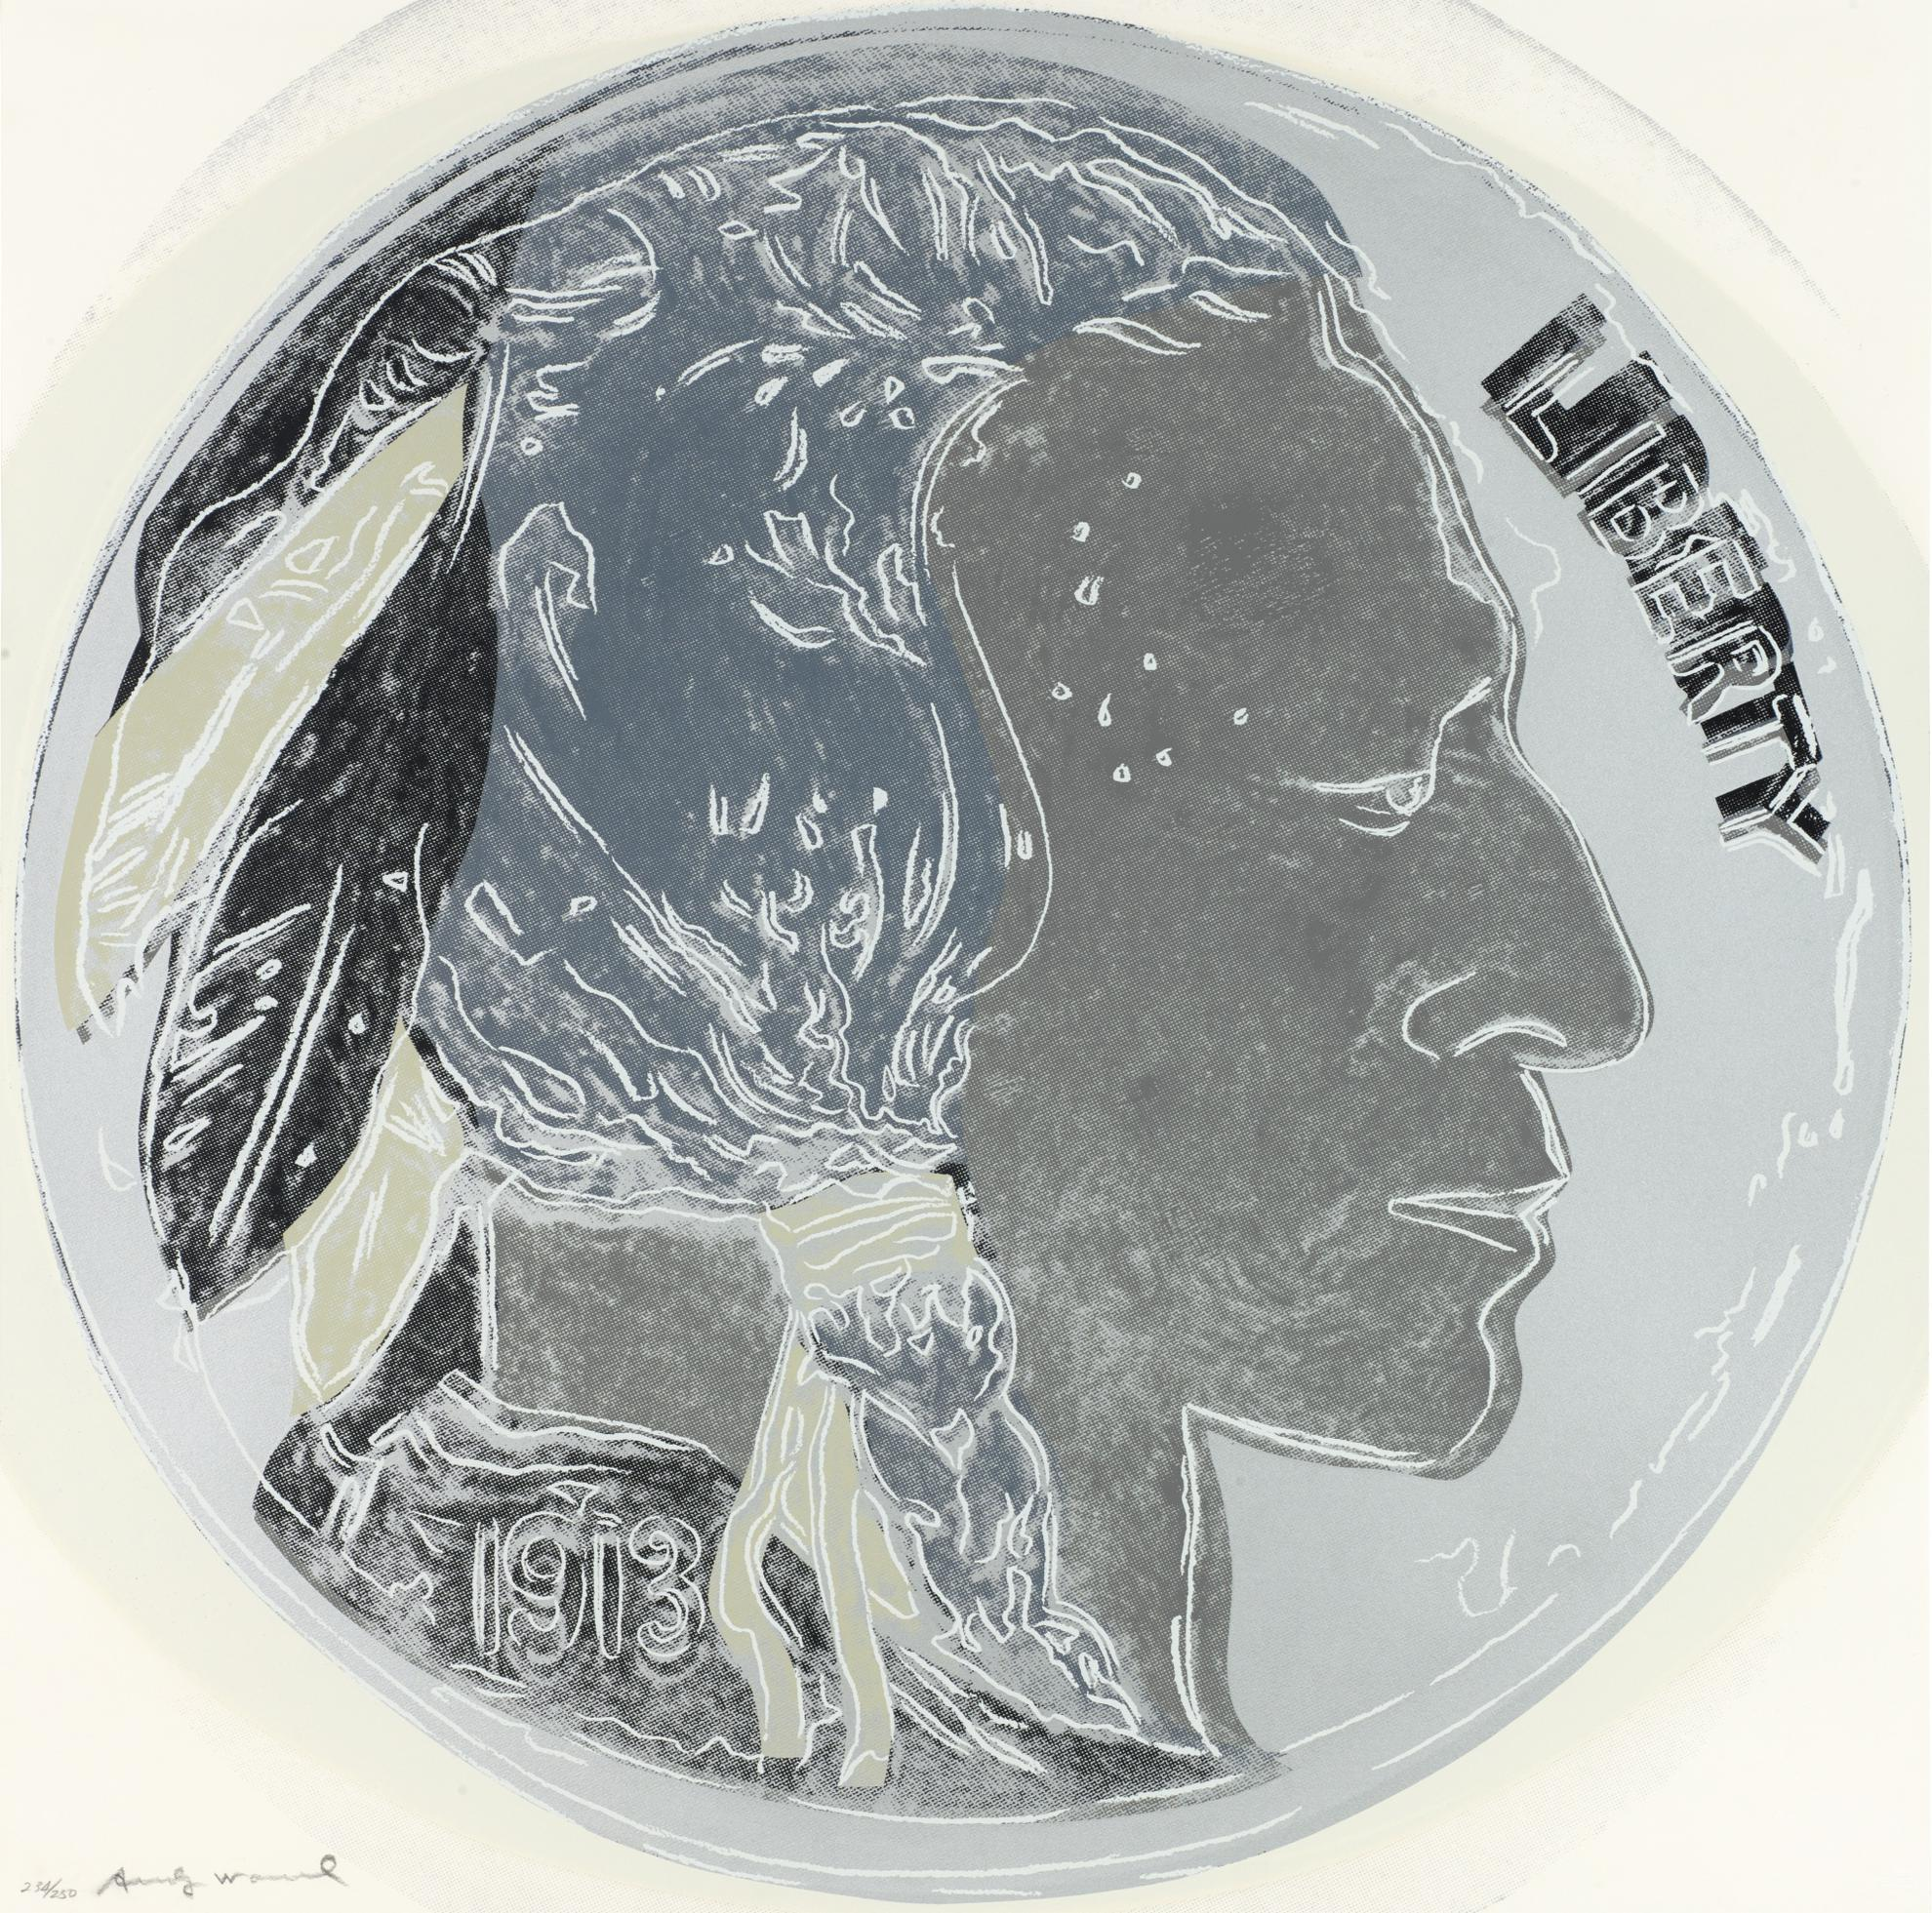 Andy Warhol-Indian Head Nickel (F. & S. II.385)-1986